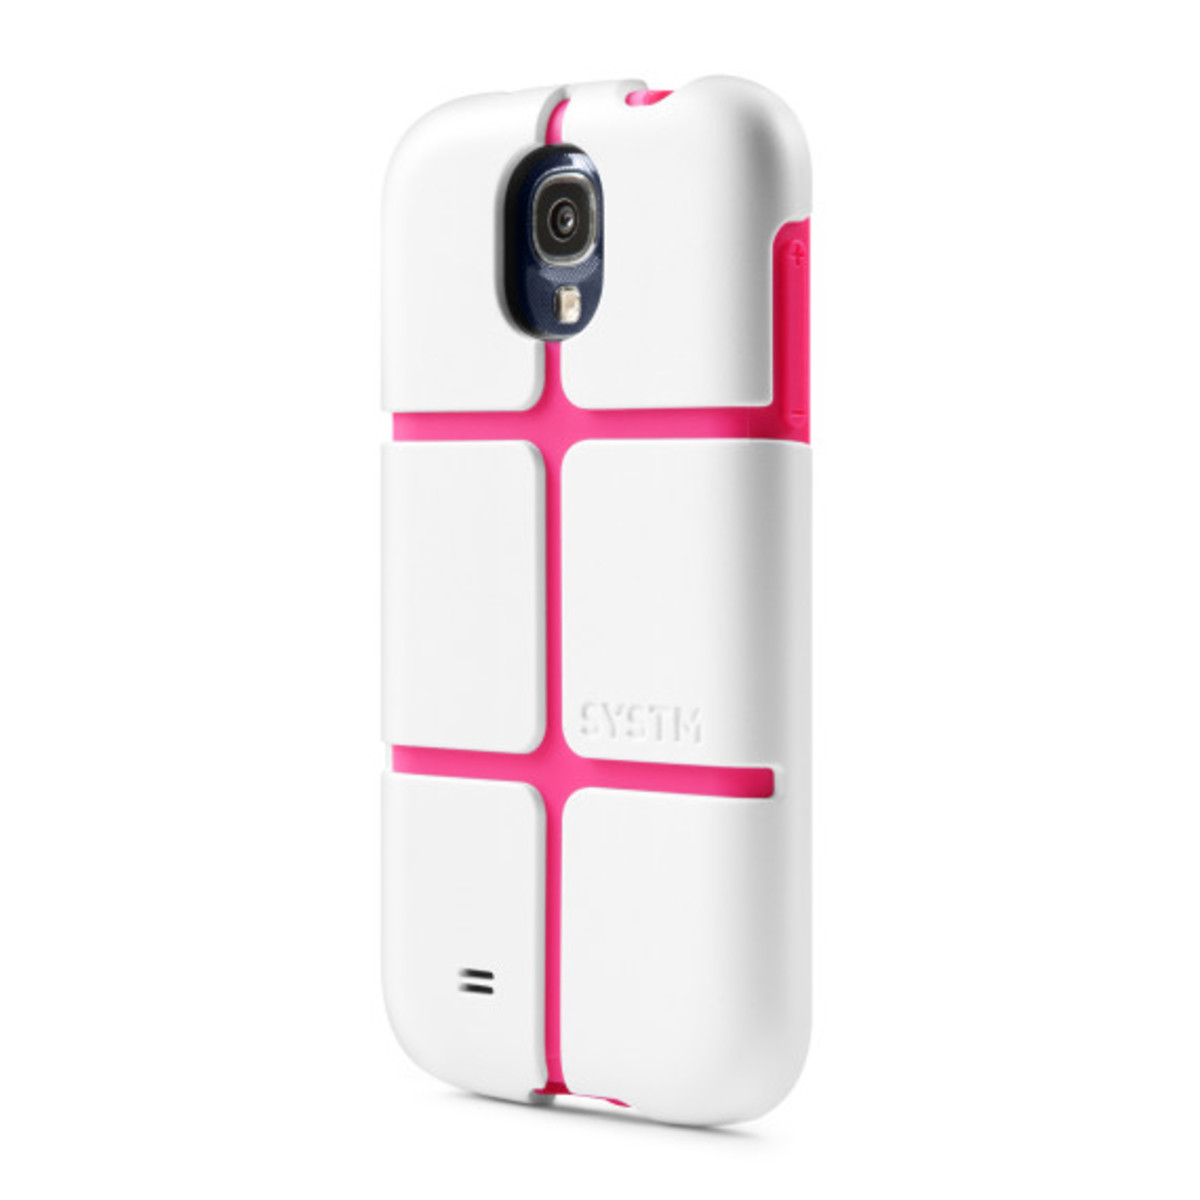 incase-samsung-galaxy-s4-systm-chisel-white-pink-2